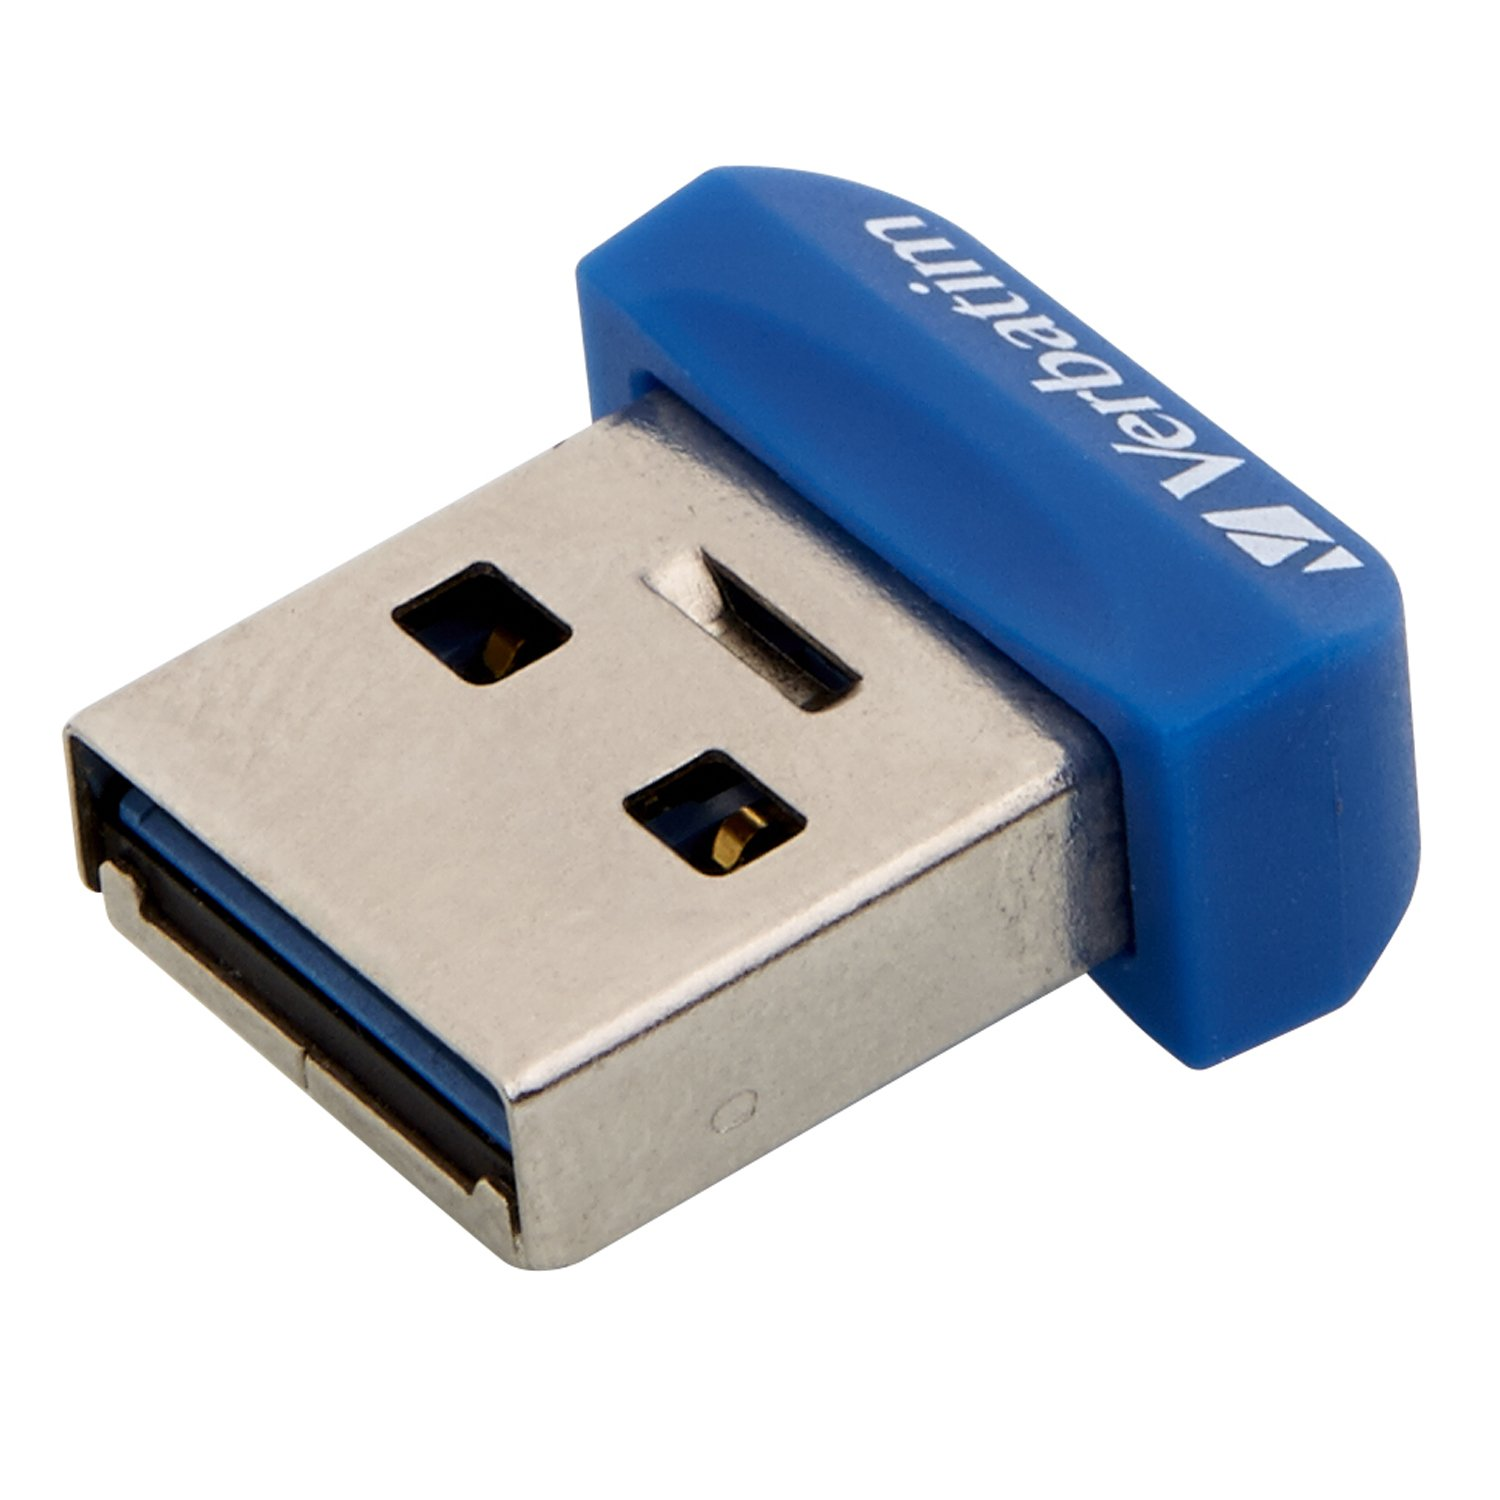 Verbatim 16GB Store 'n' Stay Nano USB 3.0 Flash Drive